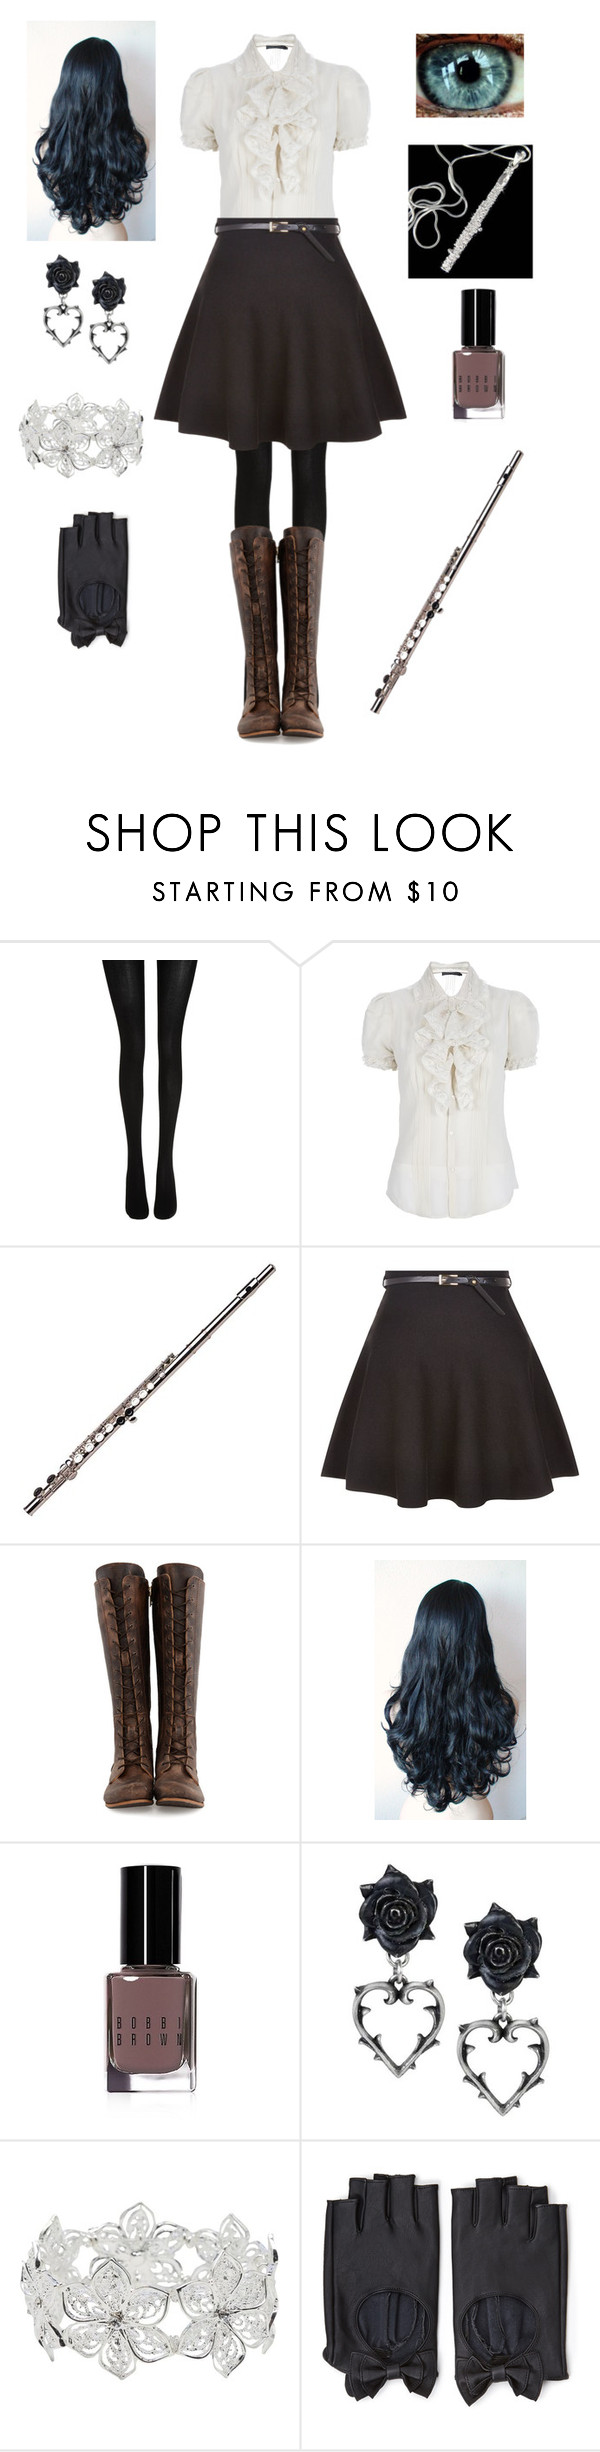 """""""Random Creepypasta Character #32"""" by ender1027 ❤ liked on Polyvore featuring Wolford, Ralph Lauren, New Look, John Fluevog, Bobbi Brown Cosmetics, M&Co and Forever 21"""